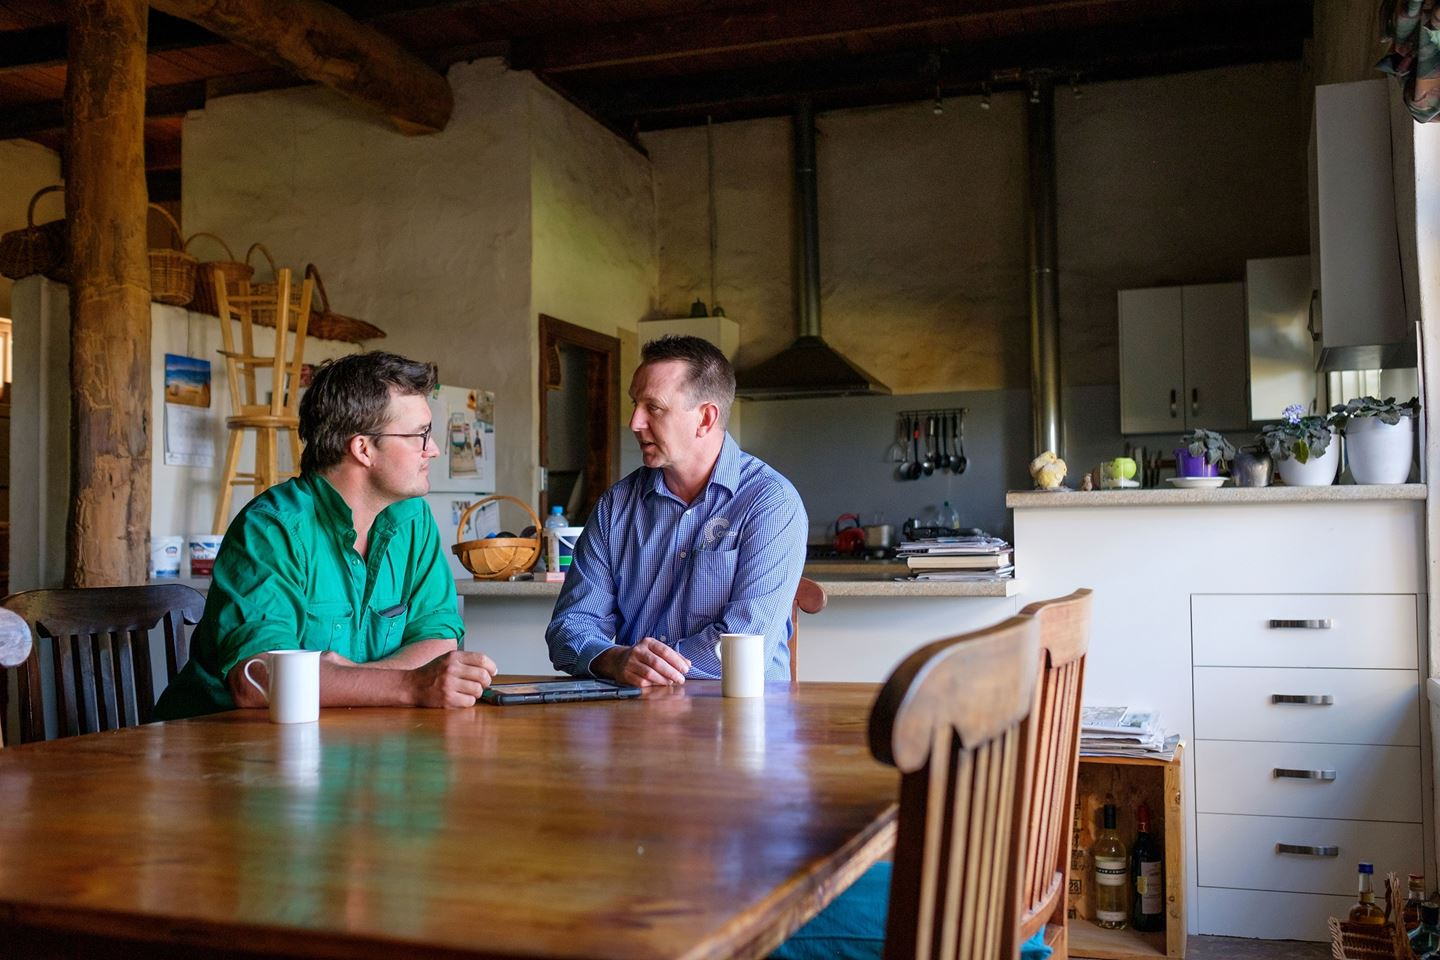 A man in a green shirt and a man in a blue shirt sit at a kitchen table chatting with coffee mugs in front of them